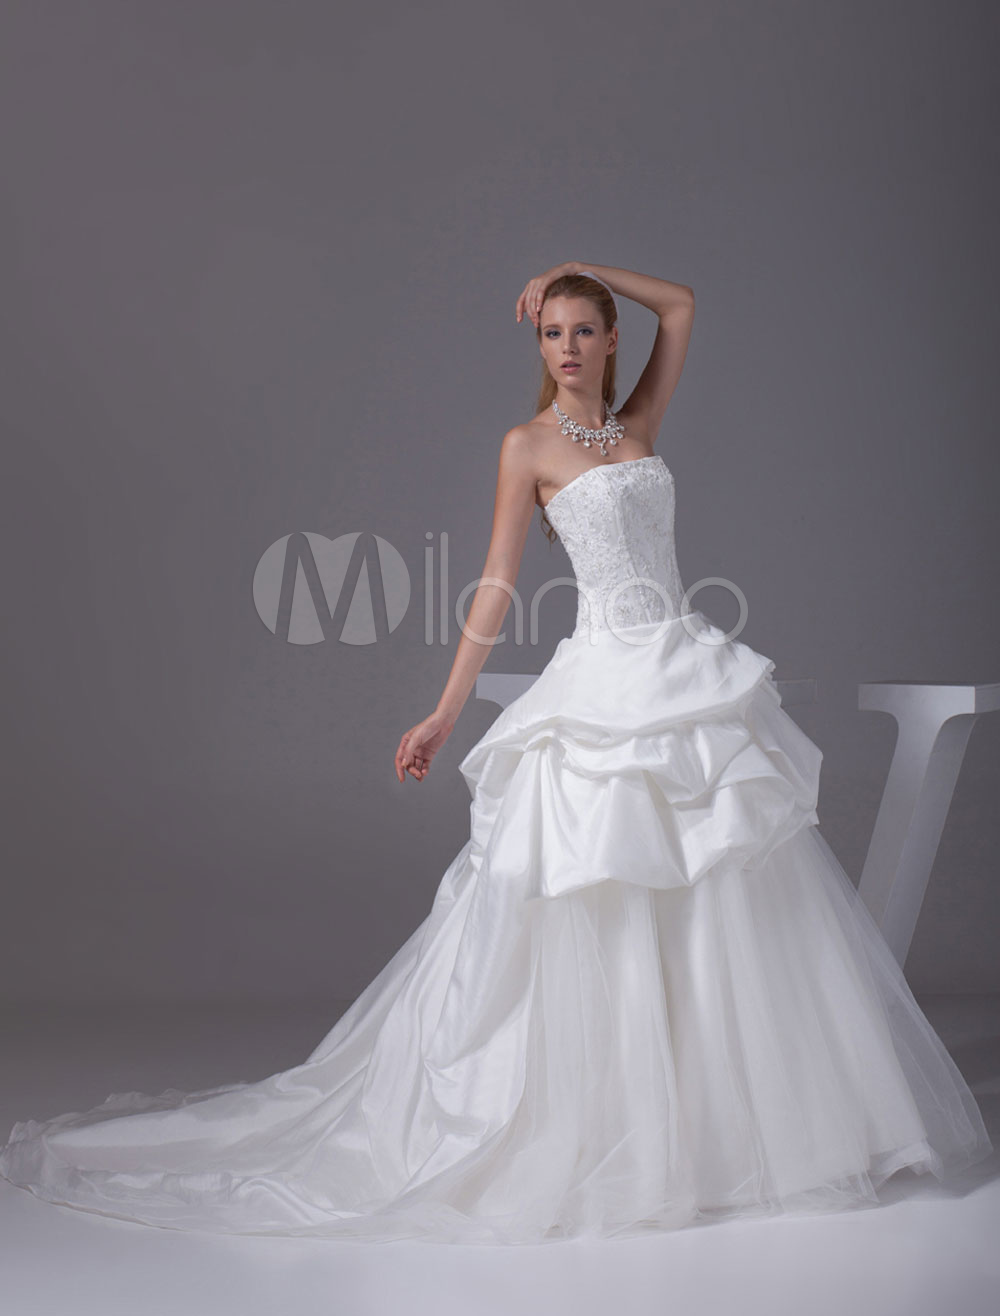 Buy Organza Ball Gown Strapless Beading Lace Applique Satin Pleated Chaple Train Bridal Dress for $170.99 in Milanoo store